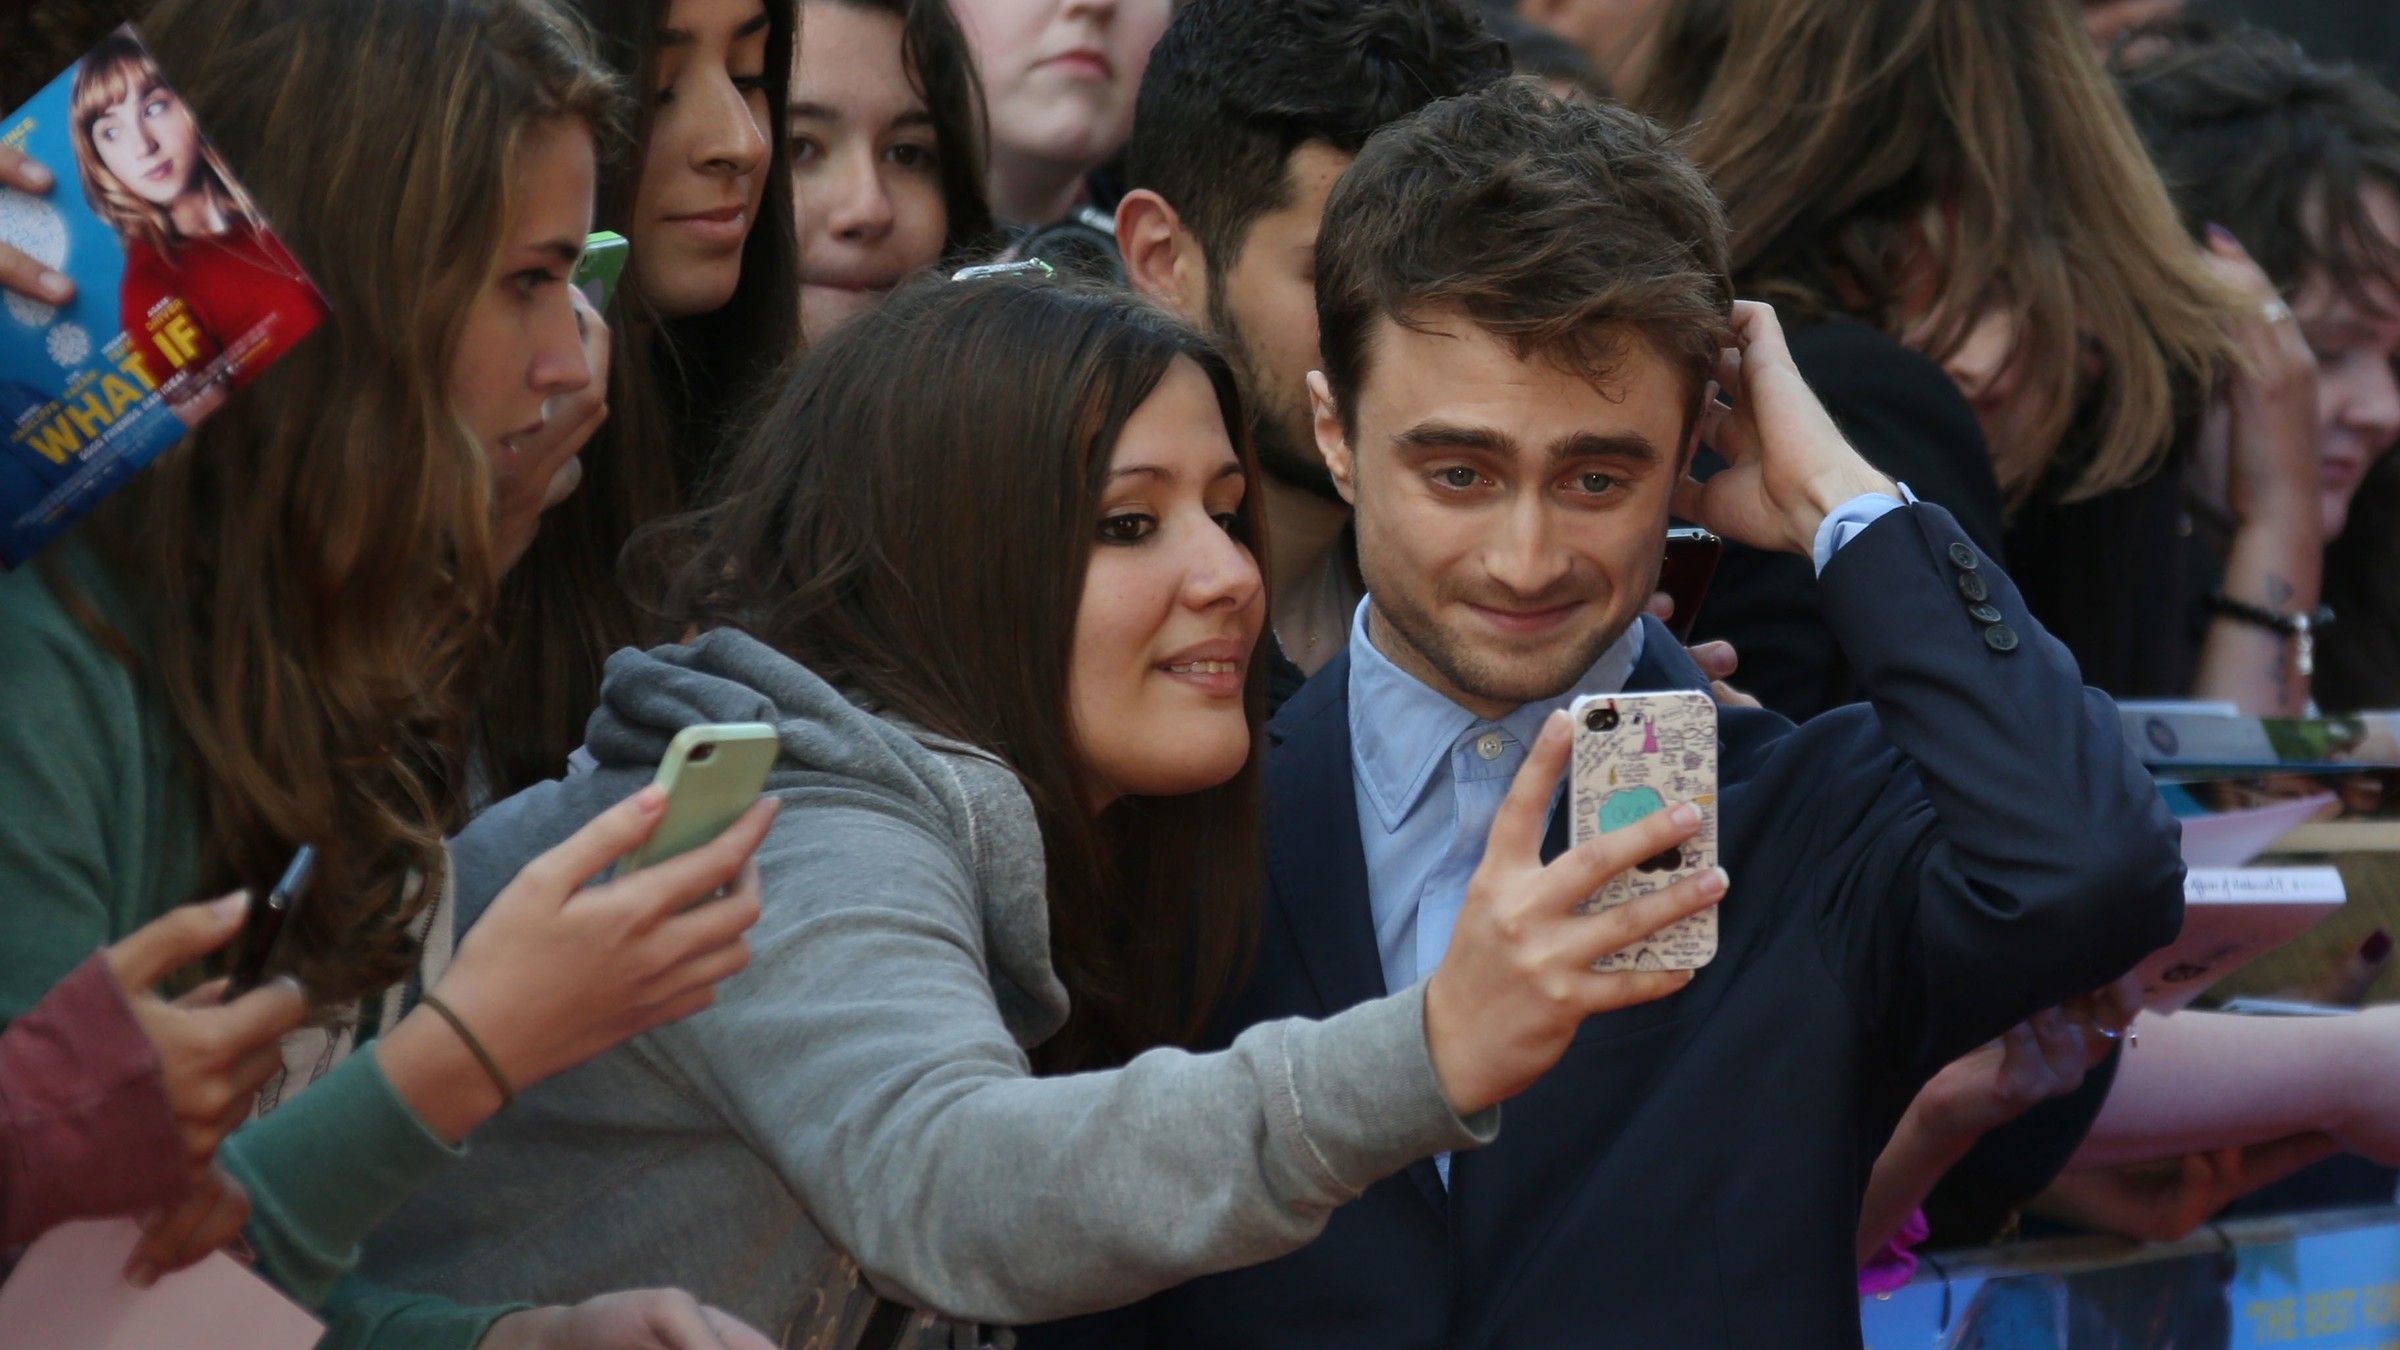 British actor Daniel Radcliffe poses for photographs with fans as he arrives on the red carpet for the UK premiere of What If at the Odeon West End in central London, Tuesday, Aug. 12, 2014. (Photo by Joel Ryan/Invision/AP)